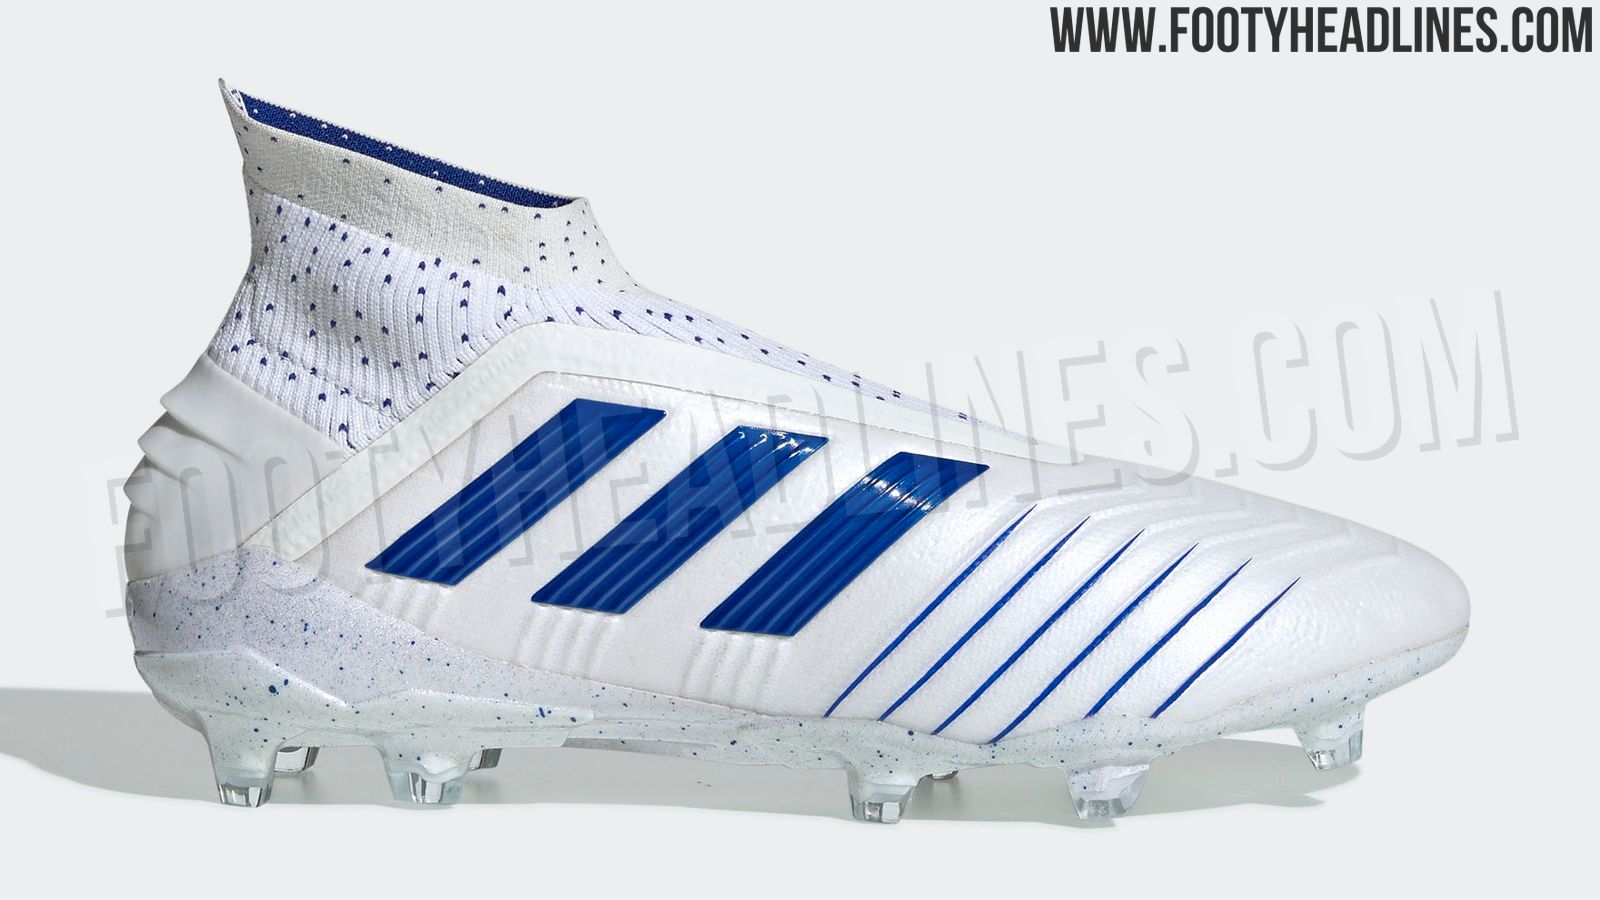 7af3a76fb98b White Adidas 2019 Virtuoso Pack Football Boots Released - Footy ...